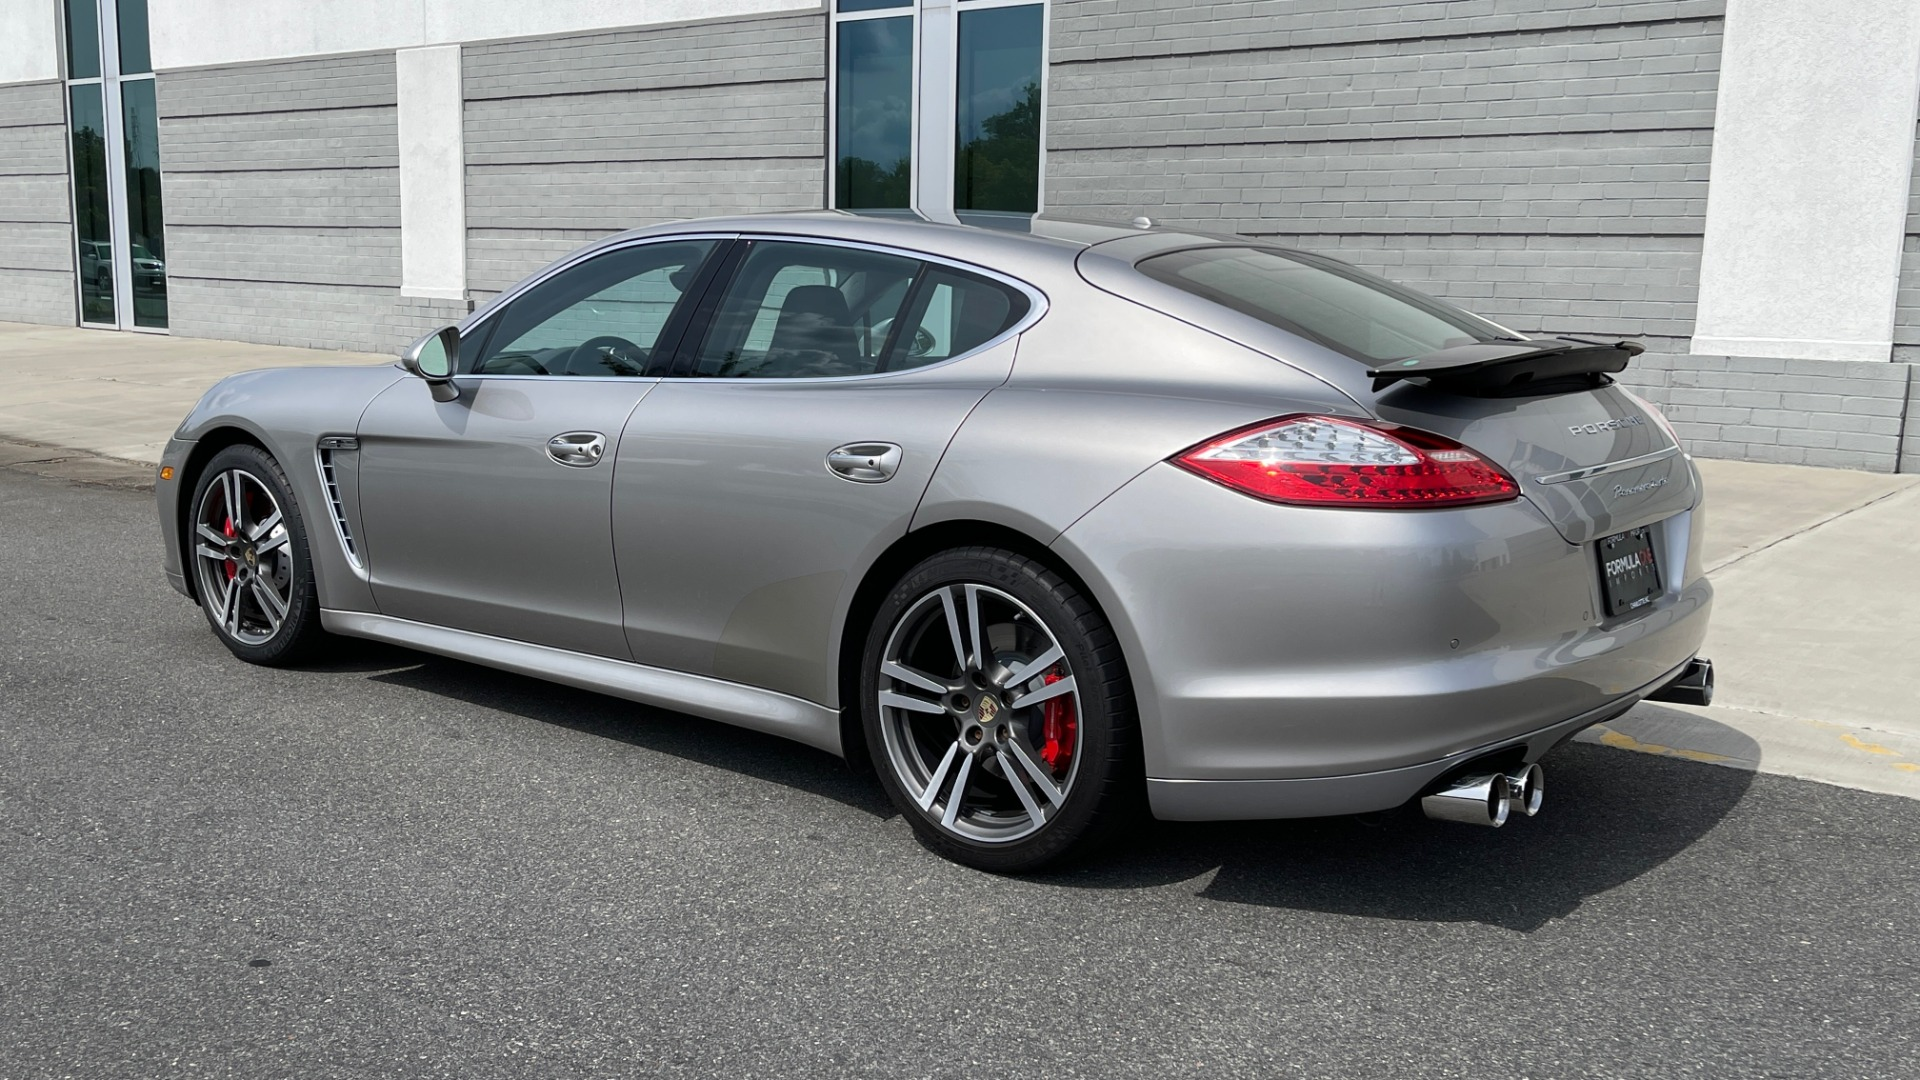 Used 2010 Porsche PANAMERA 4DR HB TURBO / SPORT CHRONO / BOSE / AUTO CLIMATE CONTROL for sale $42,124 at Formula Imports in Charlotte NC 28227 5